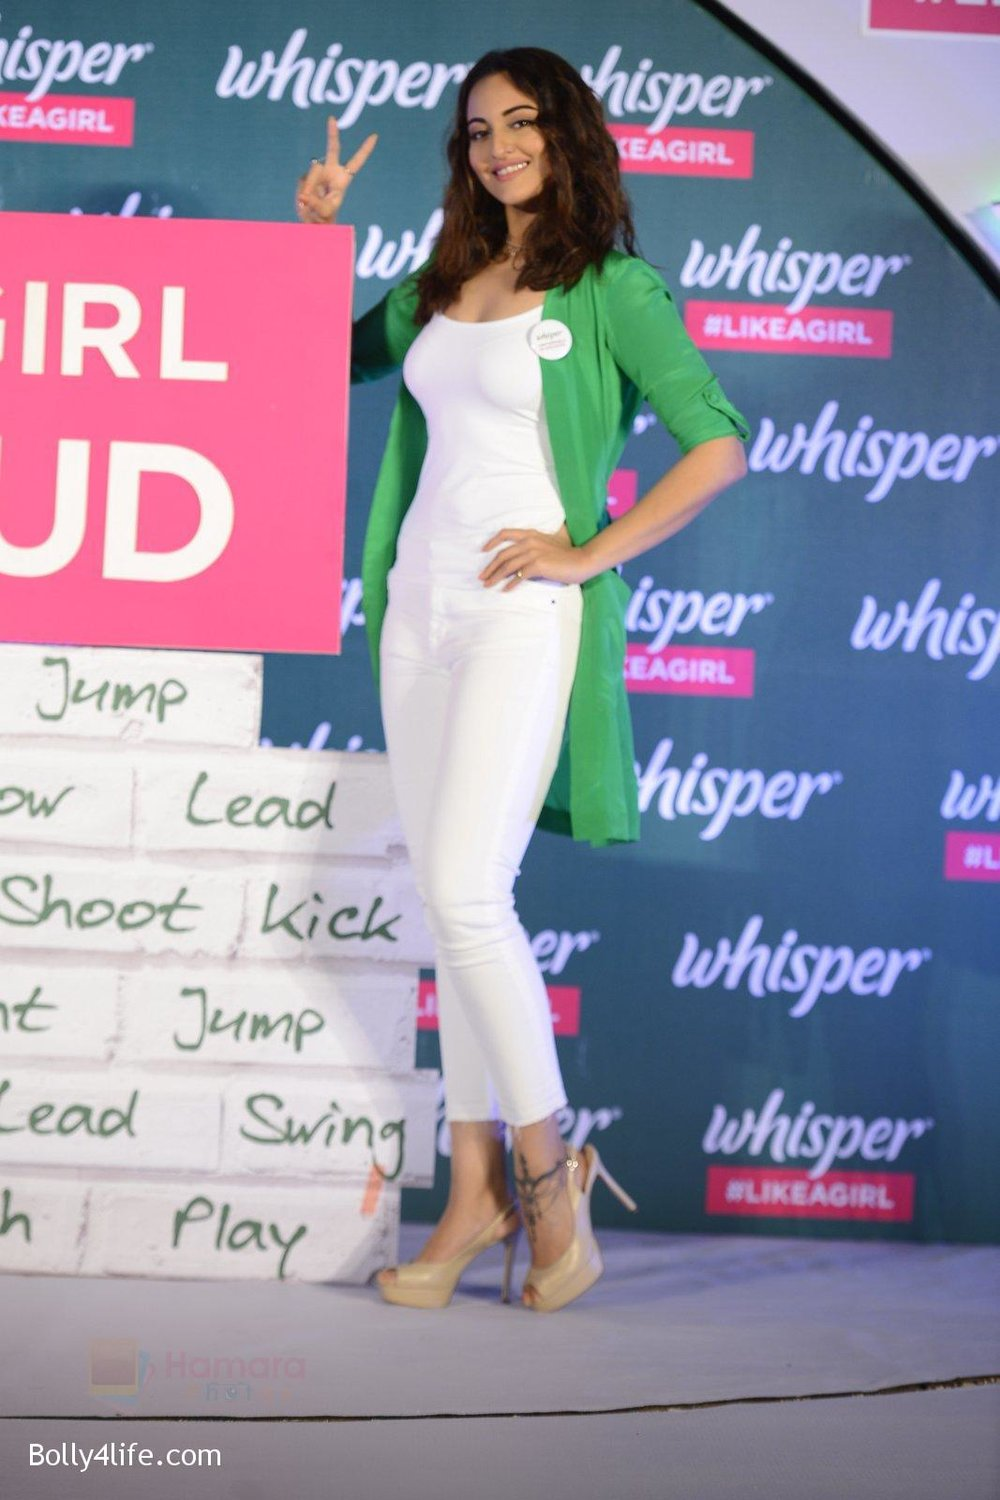 Sonakshi-Sinha-at-Whisper-new-campaign-launch-on-20th-Sept-2016-101.jpg